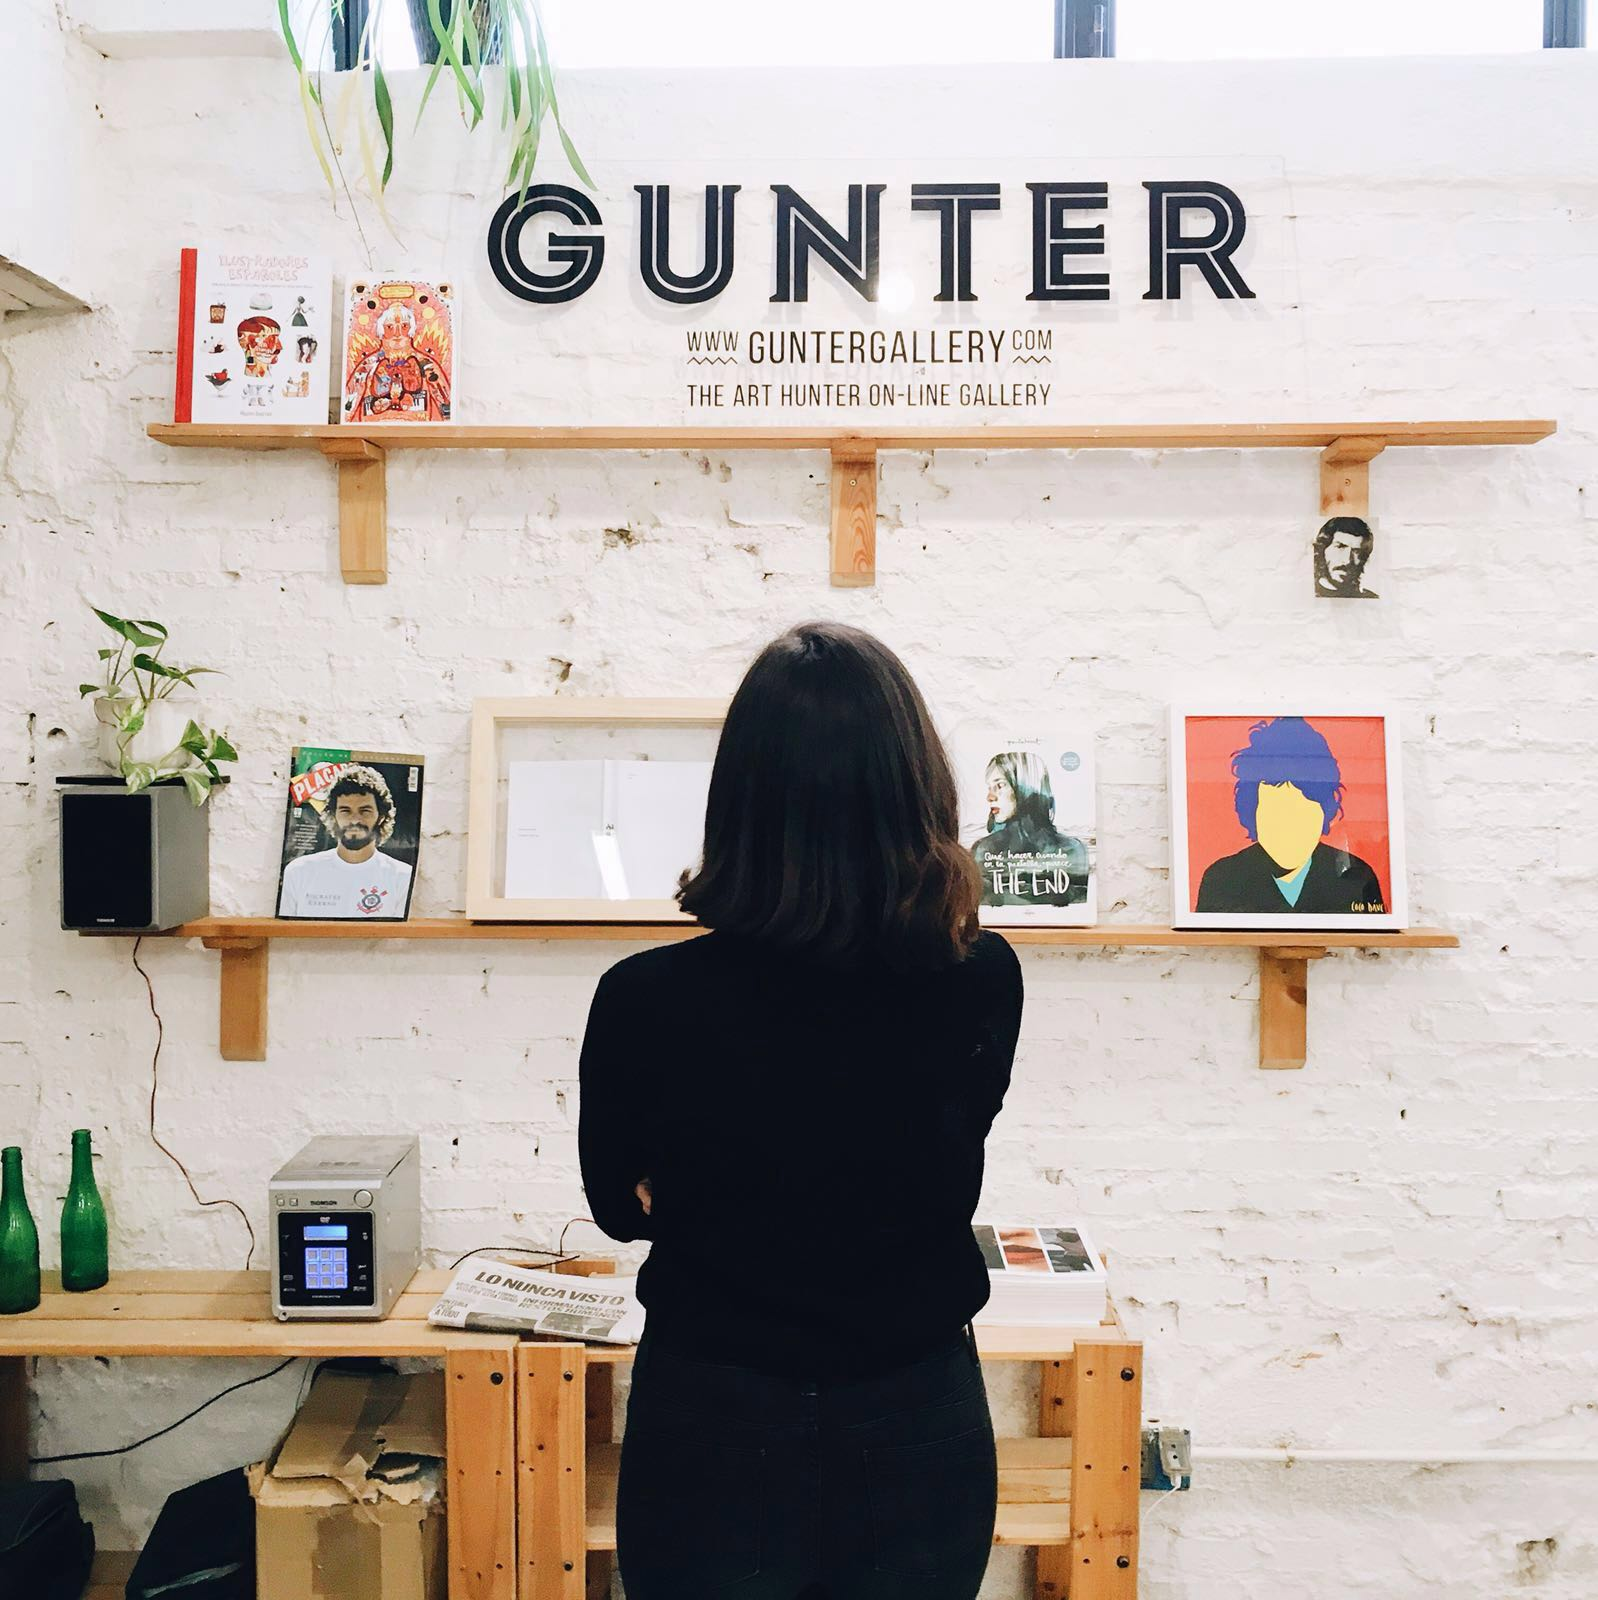 Coco dávez in Gunter's studio